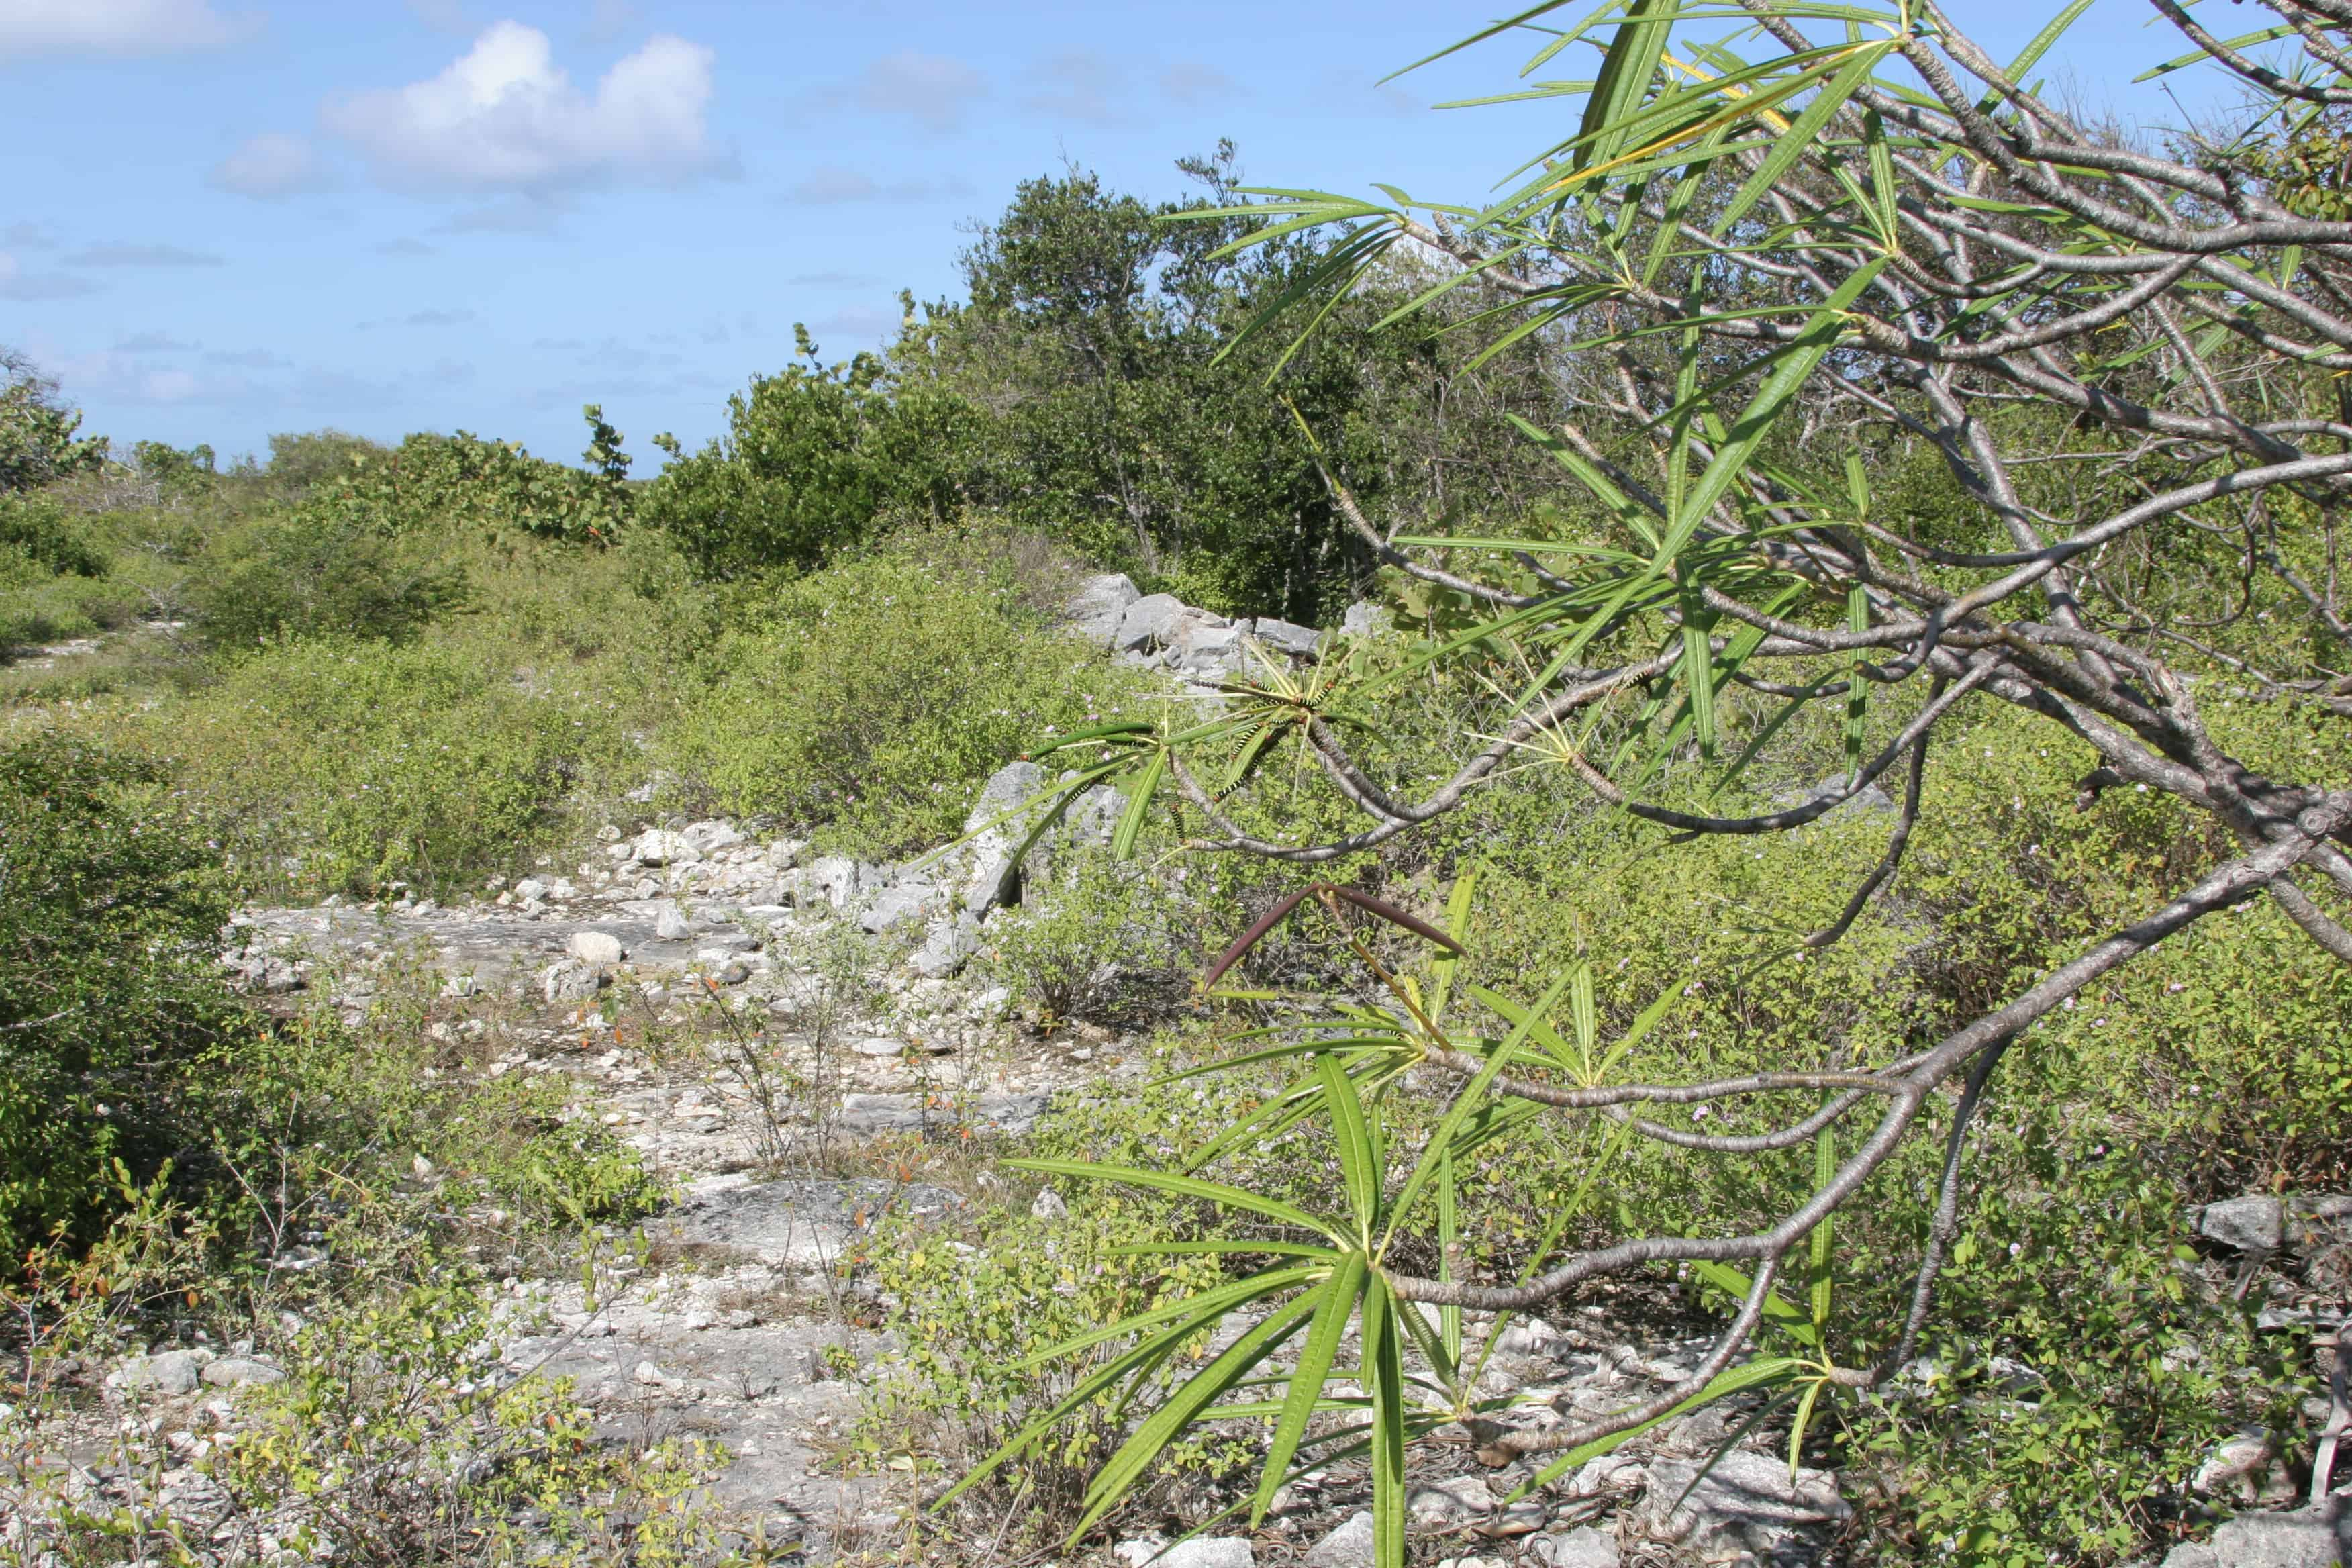 Dry scrub ecosystem on Anegada; Copyright: Dr Mike Pienkowski